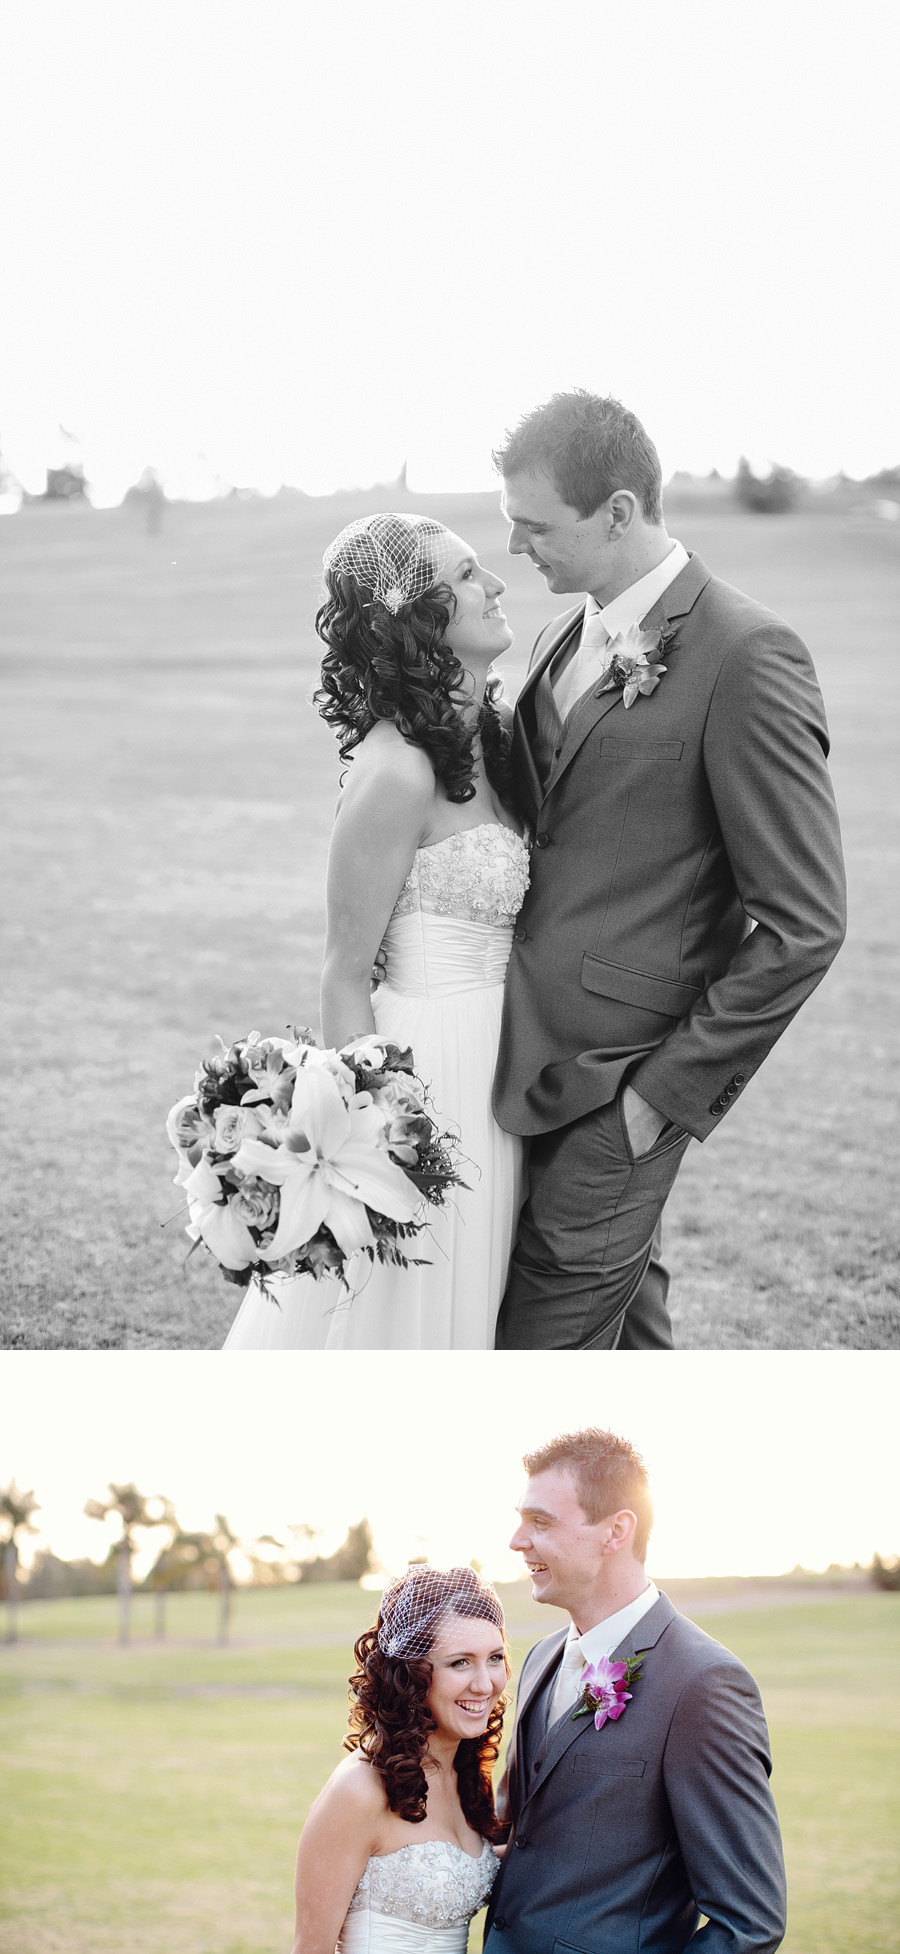 Kurrajong Wedding Photography: Miah & Dave